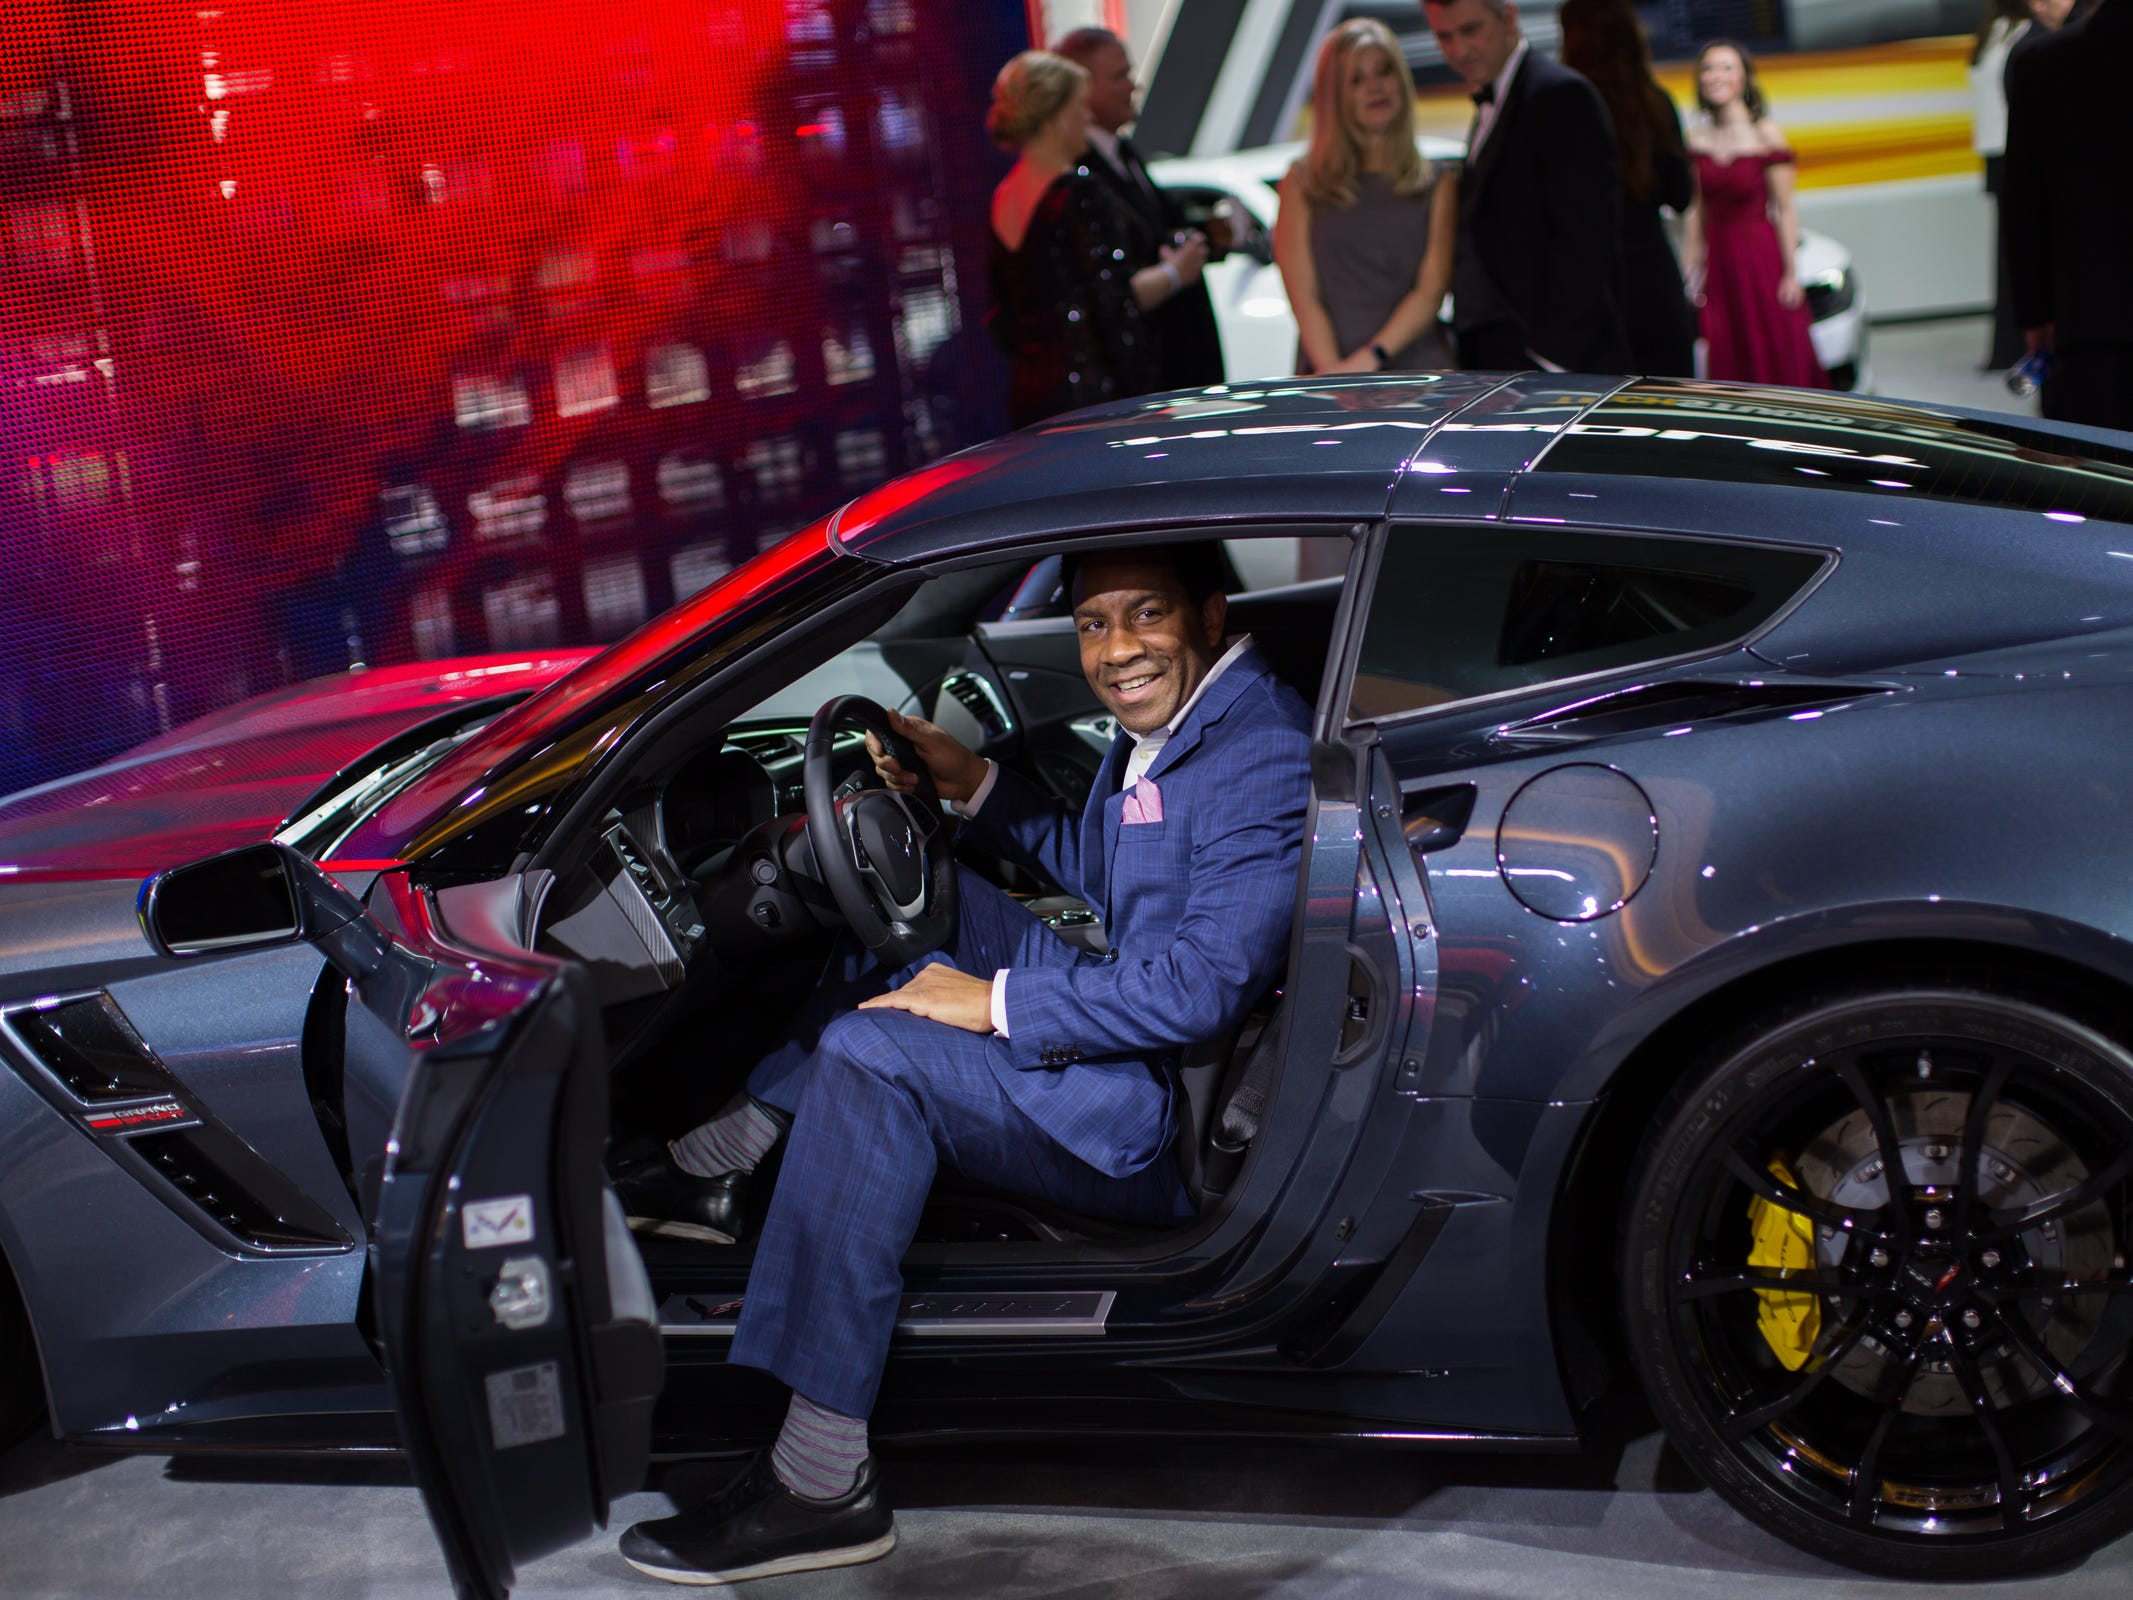 John Vasquez of Miami sits in Chevrolet Corvette during the 2019 North American International Auto Show Charity Preview at Cobo Center in Detroit on Friday, January 18, 2019.